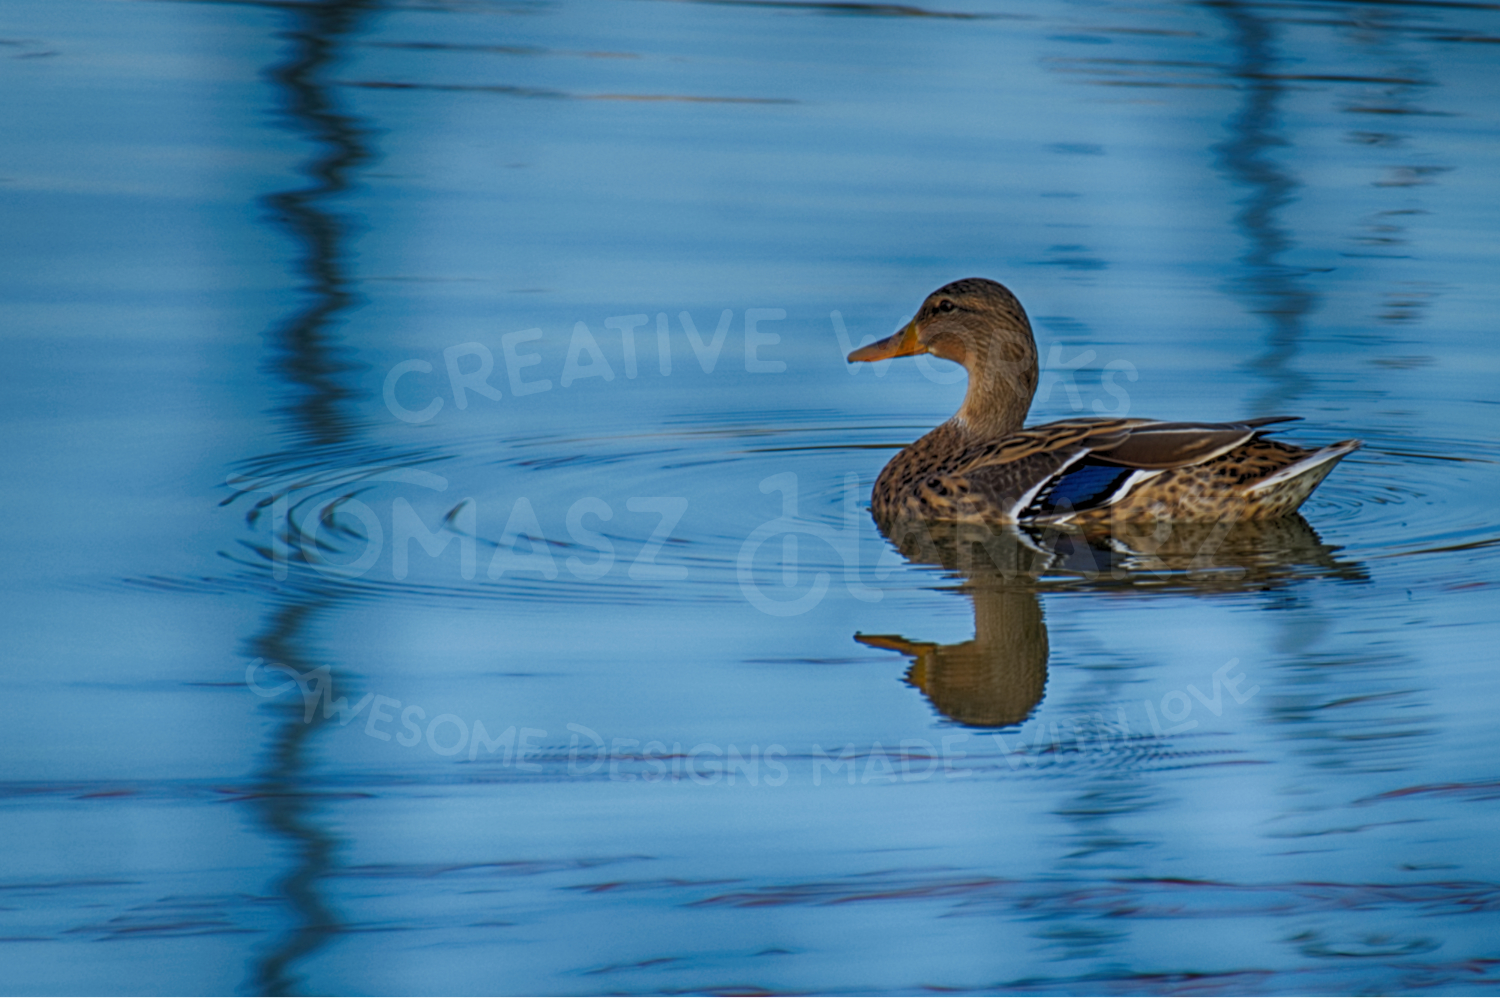 Colorful Duck On The Lake example image 1